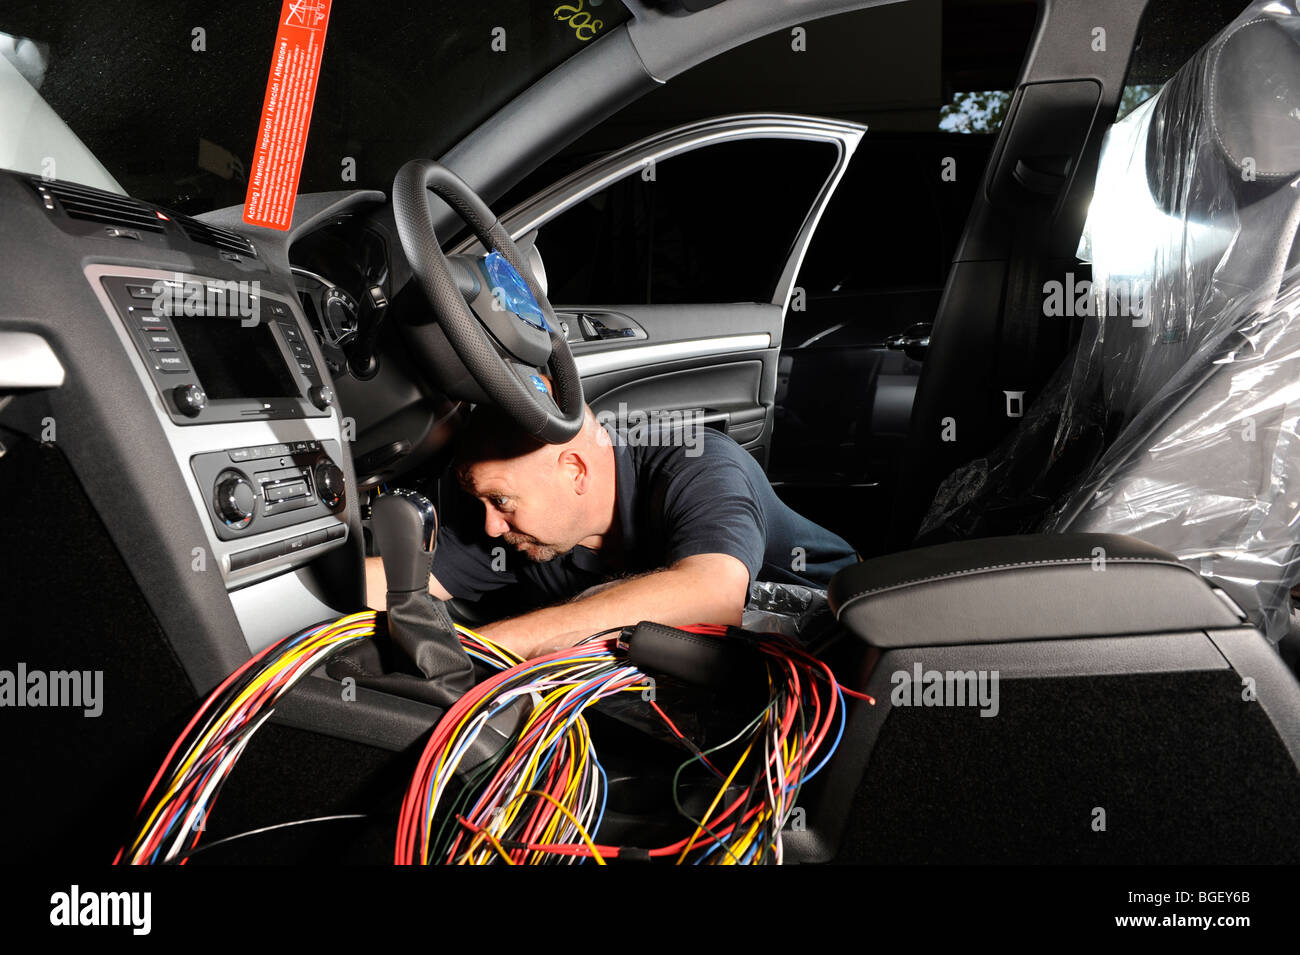 Automotive Wiring Harness Uk : A fitter putting wiring loom harness in skoda